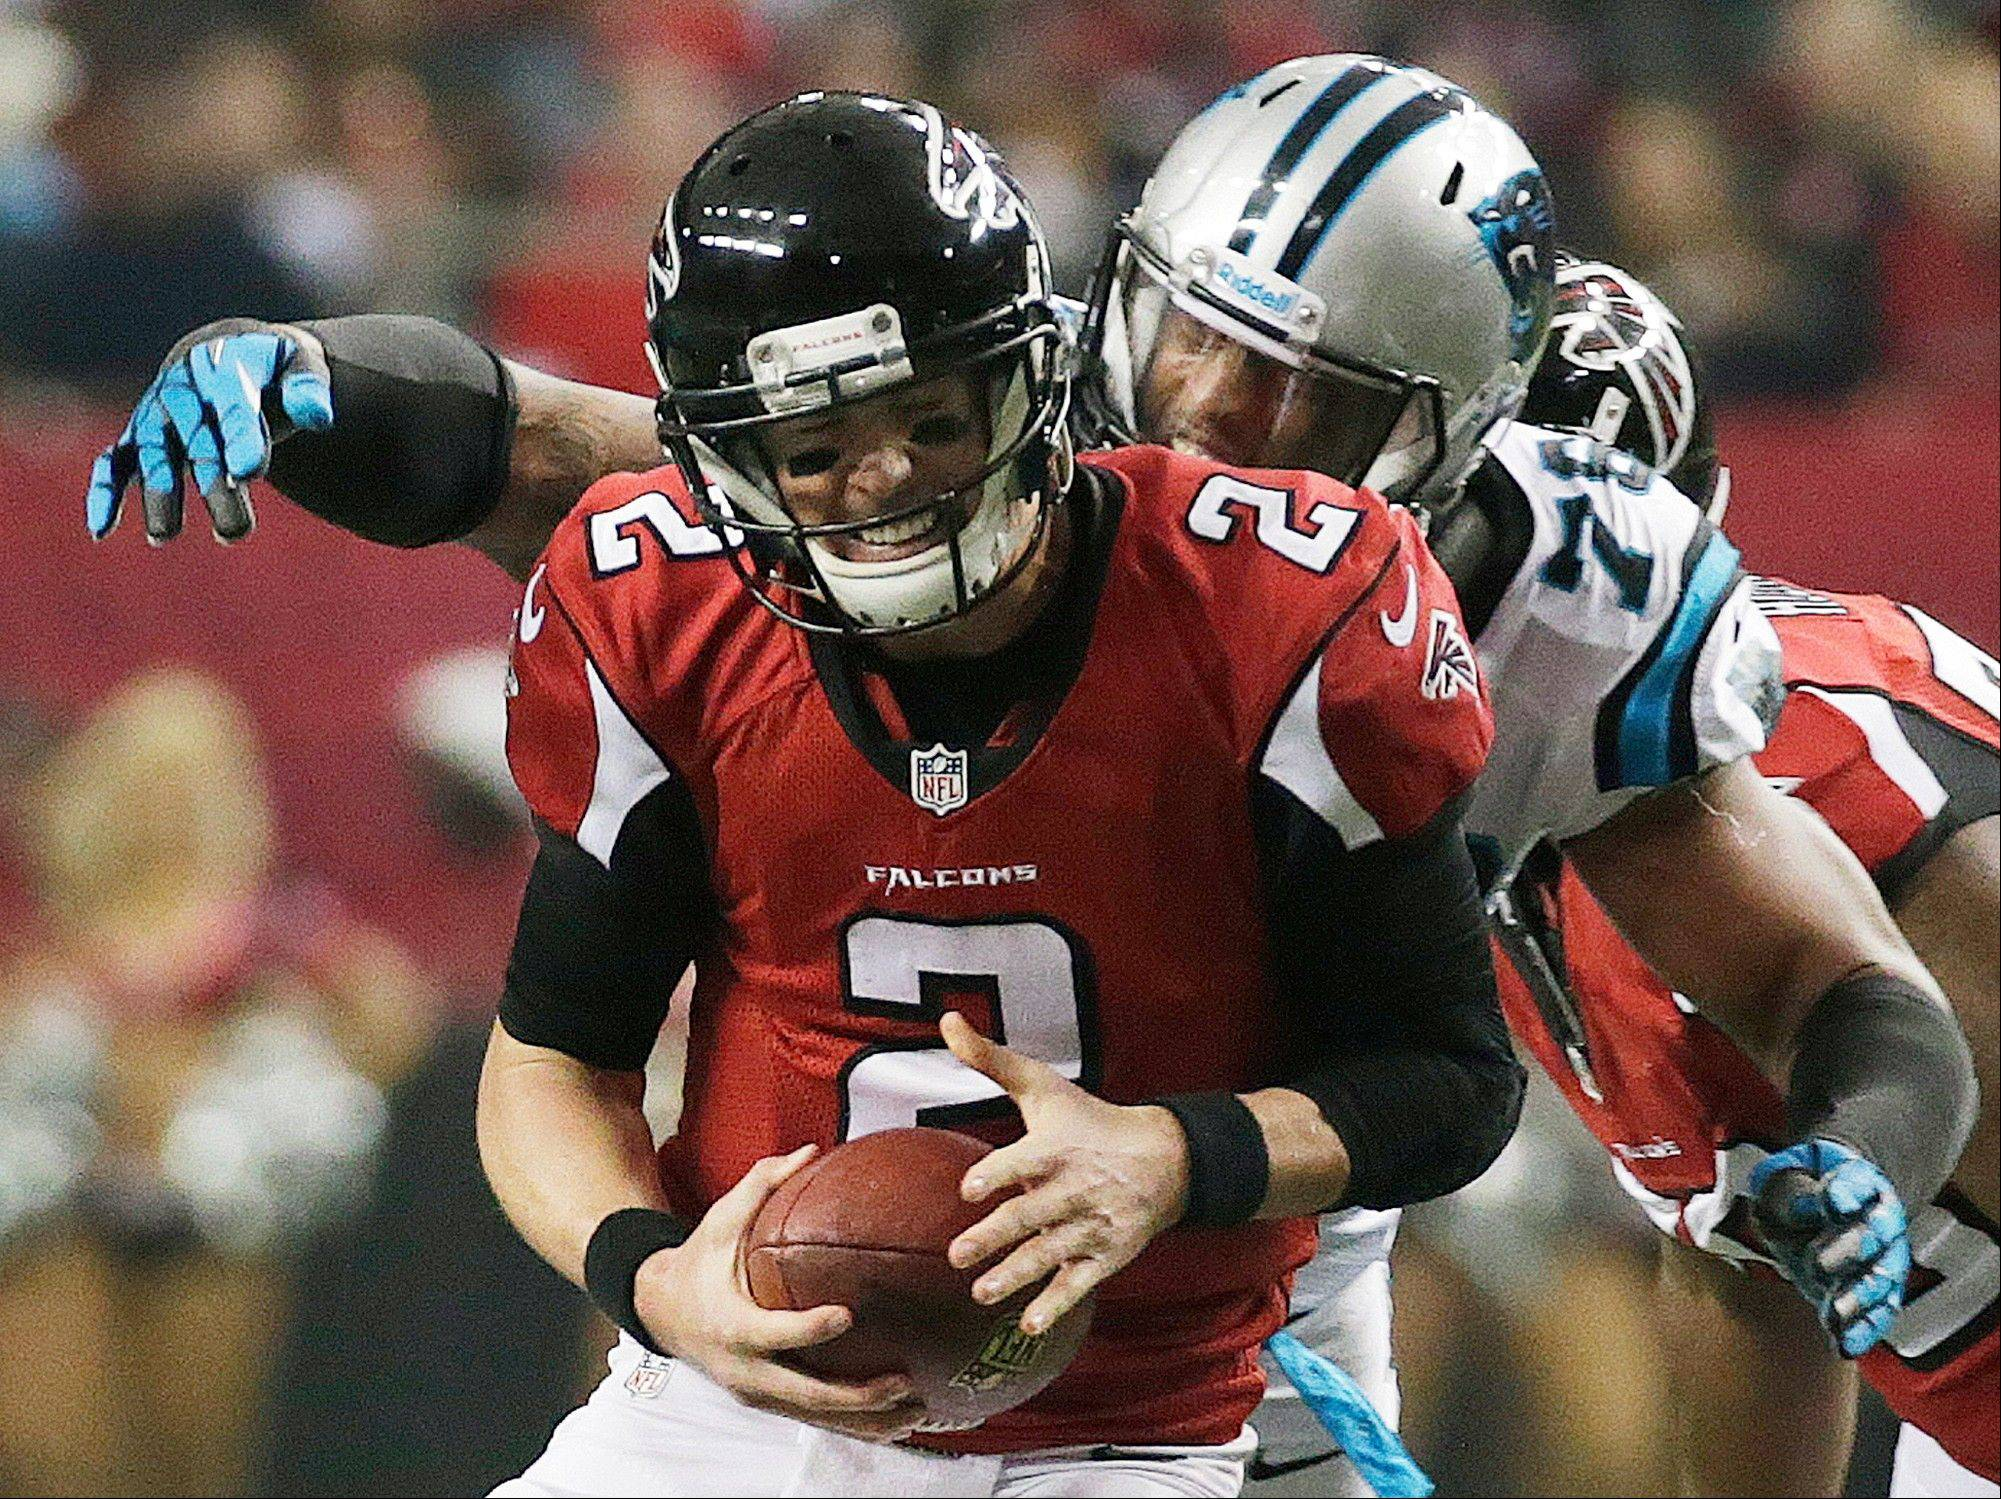 Falcons quarterback Matt Ryan is sacked by Carolina Panthers guard Nate Chandler during the first half of Sunday�s game in Atlanta.